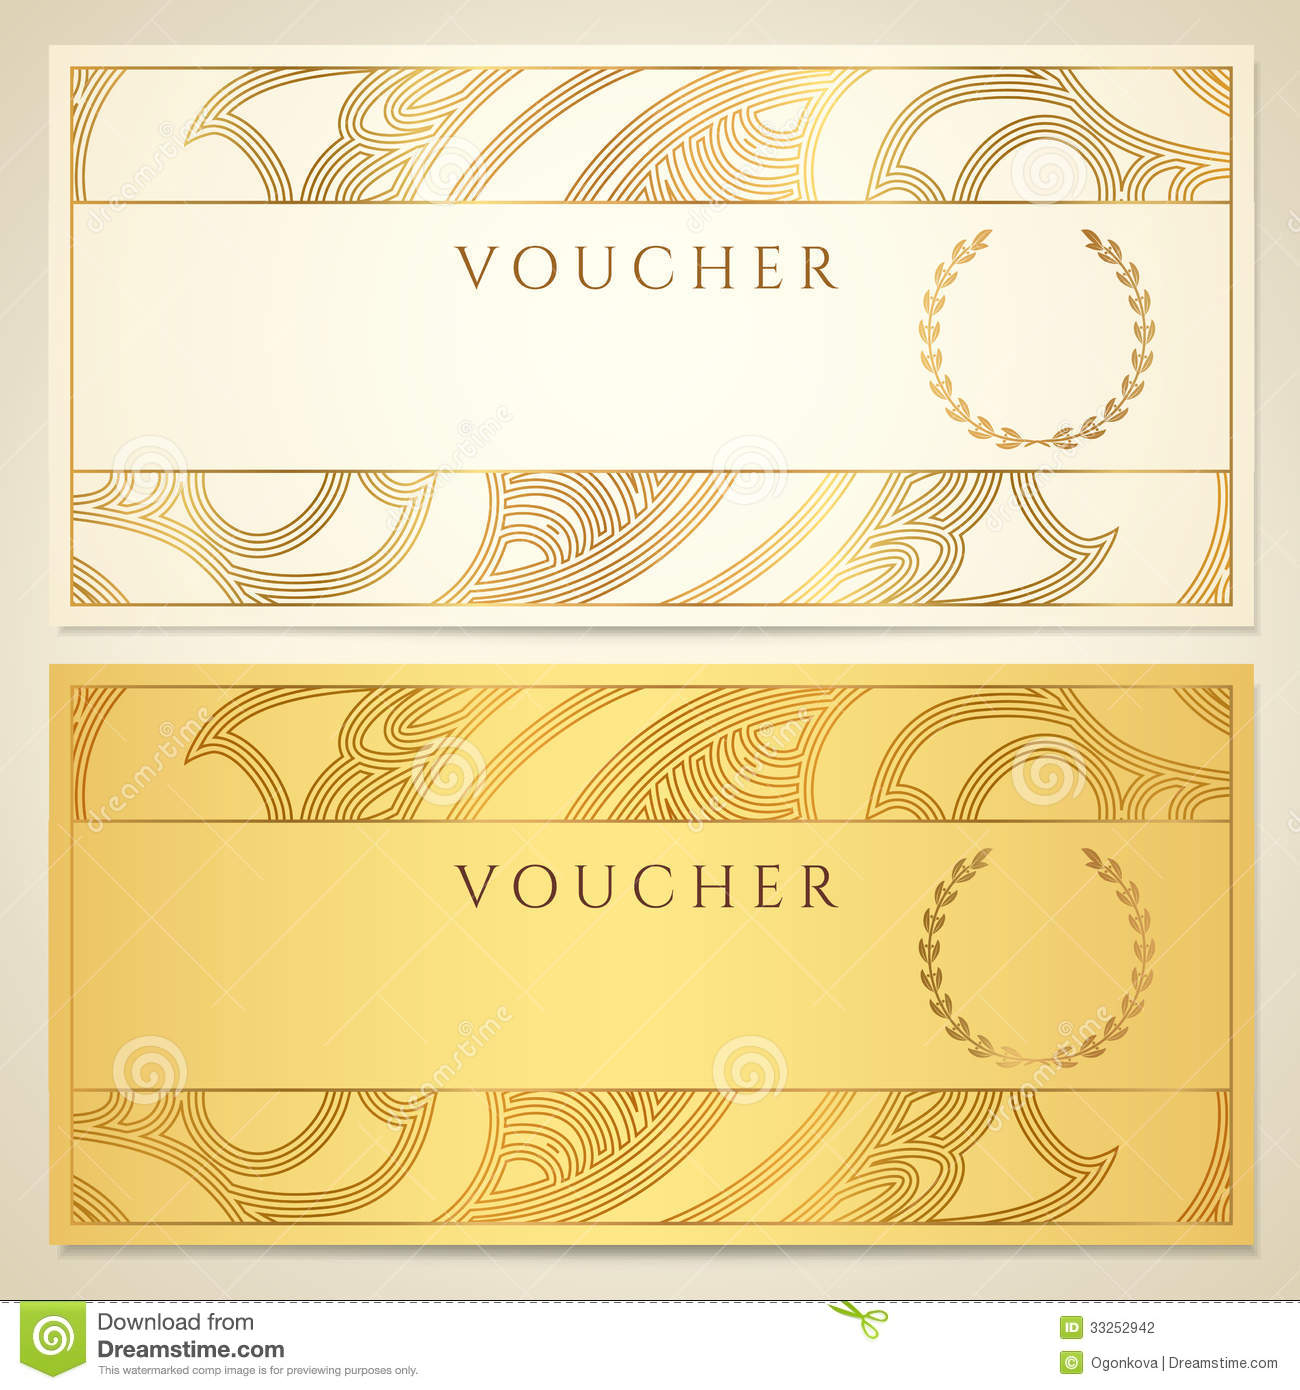 Voucher Gift Certificate Coupon Template Photography – Template for a Voucher